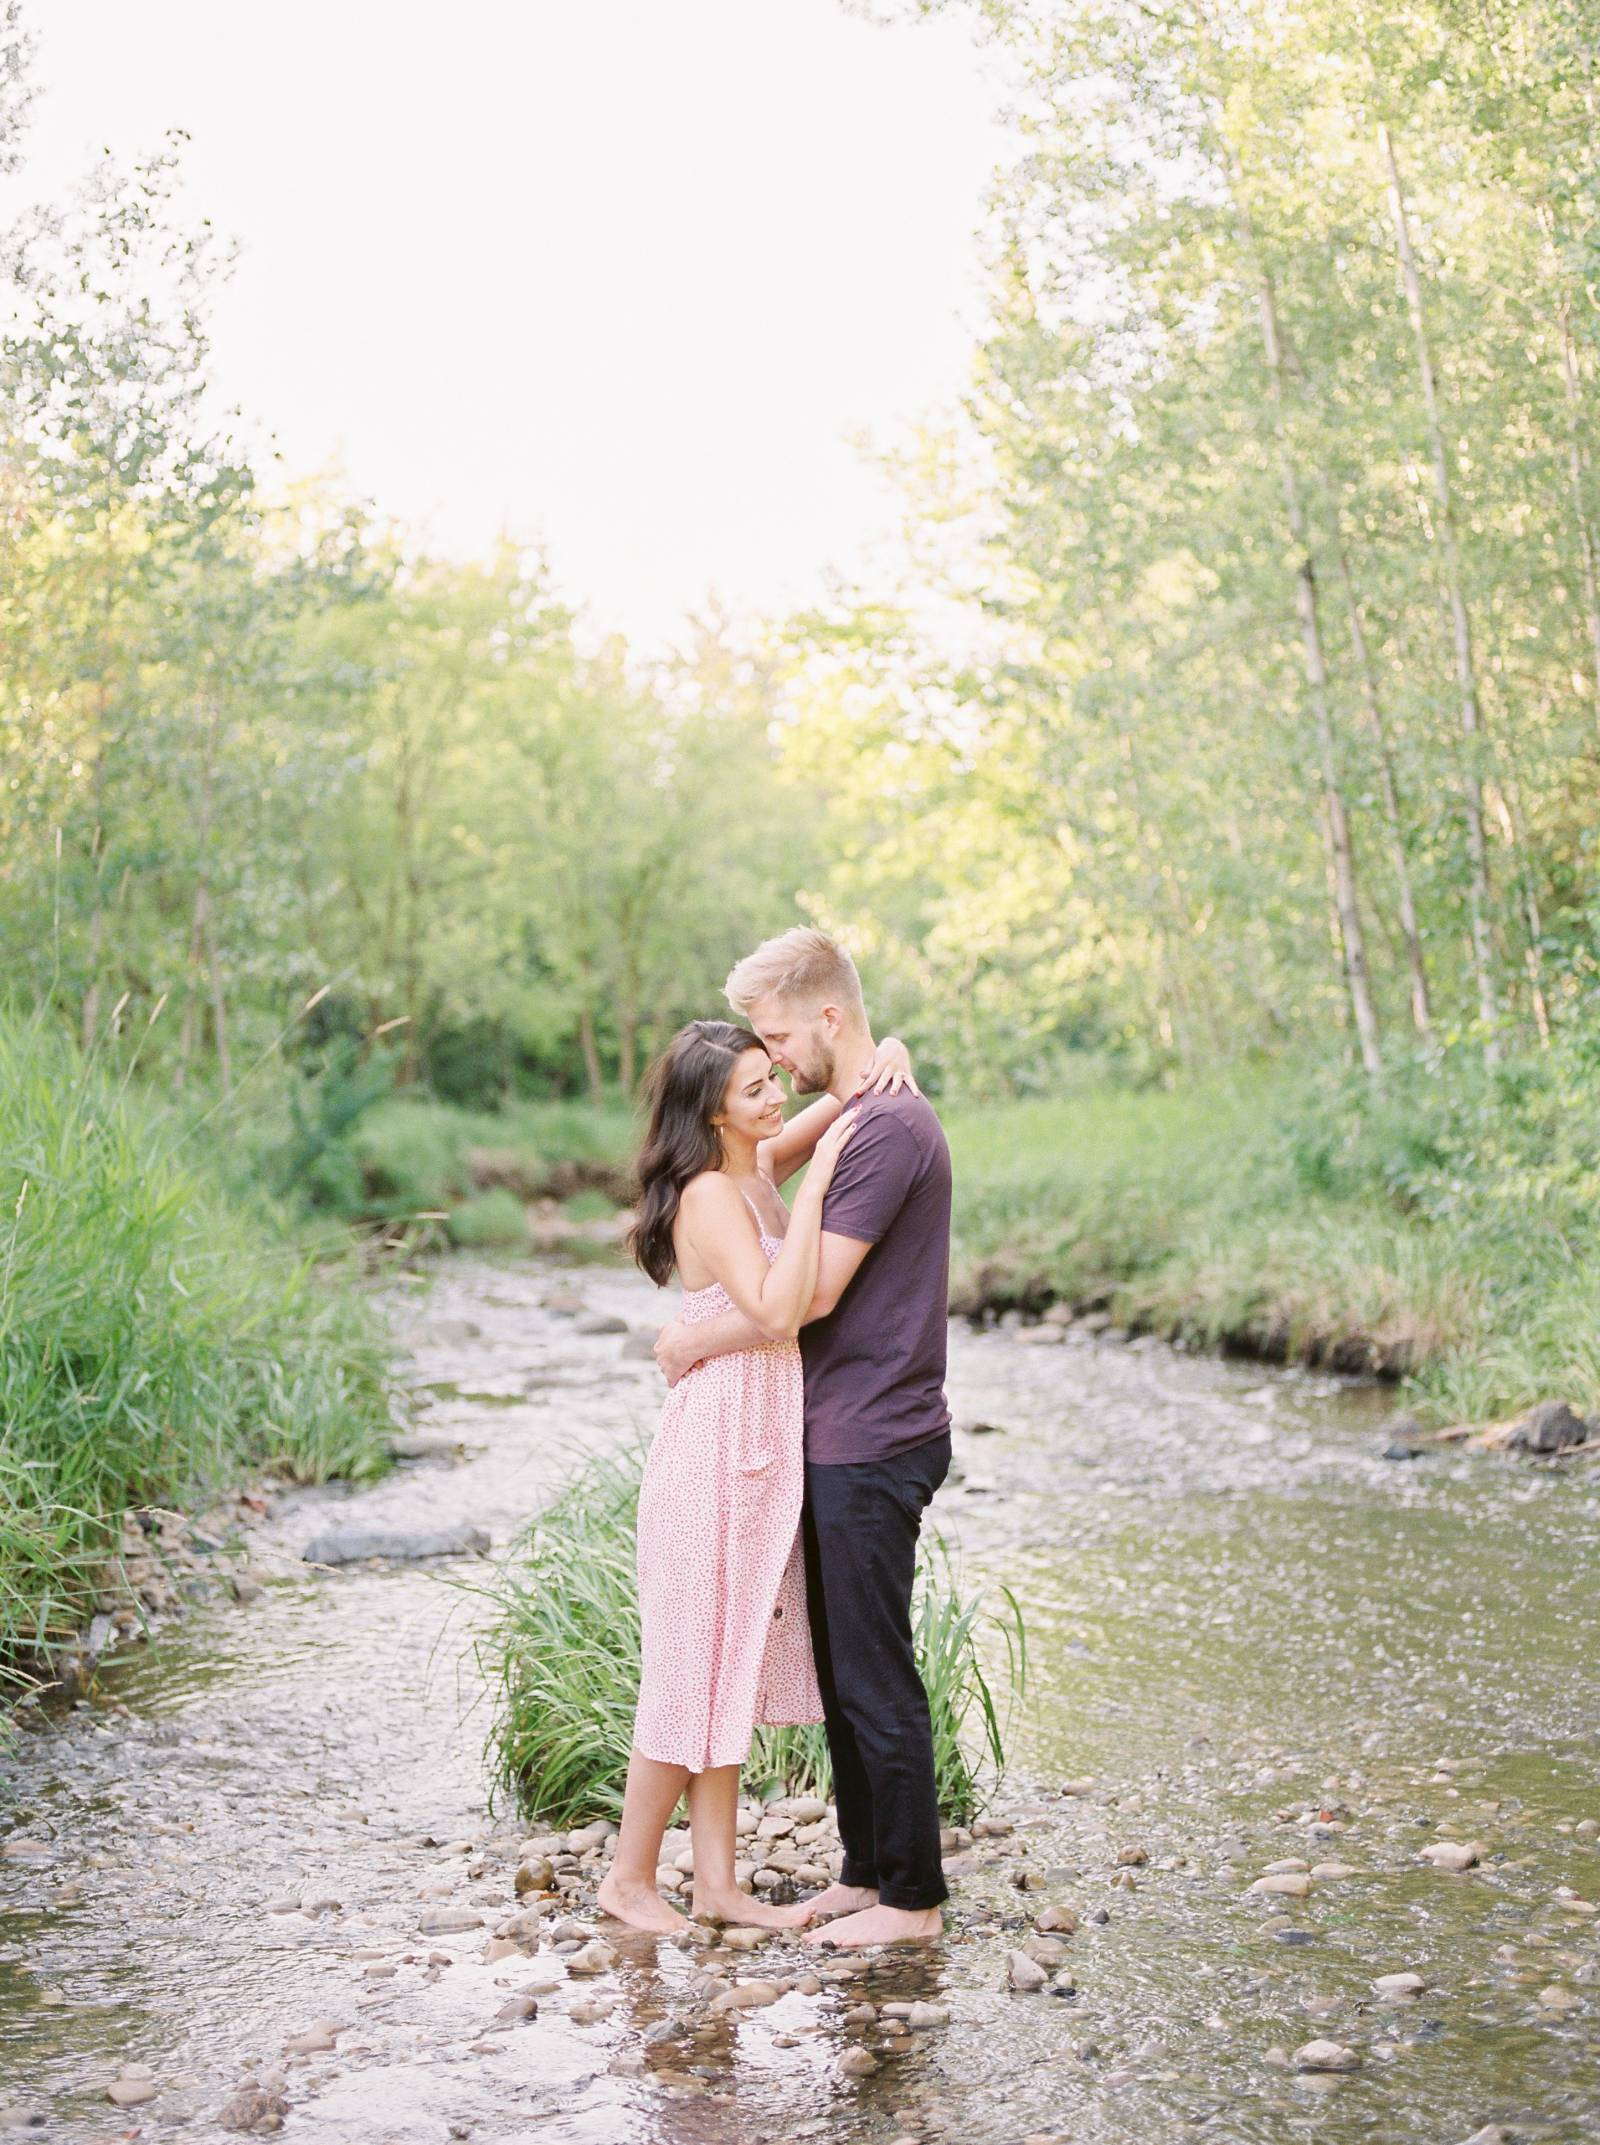 a young man tenderly embraces his fiance on a rocky bank of a spring stream